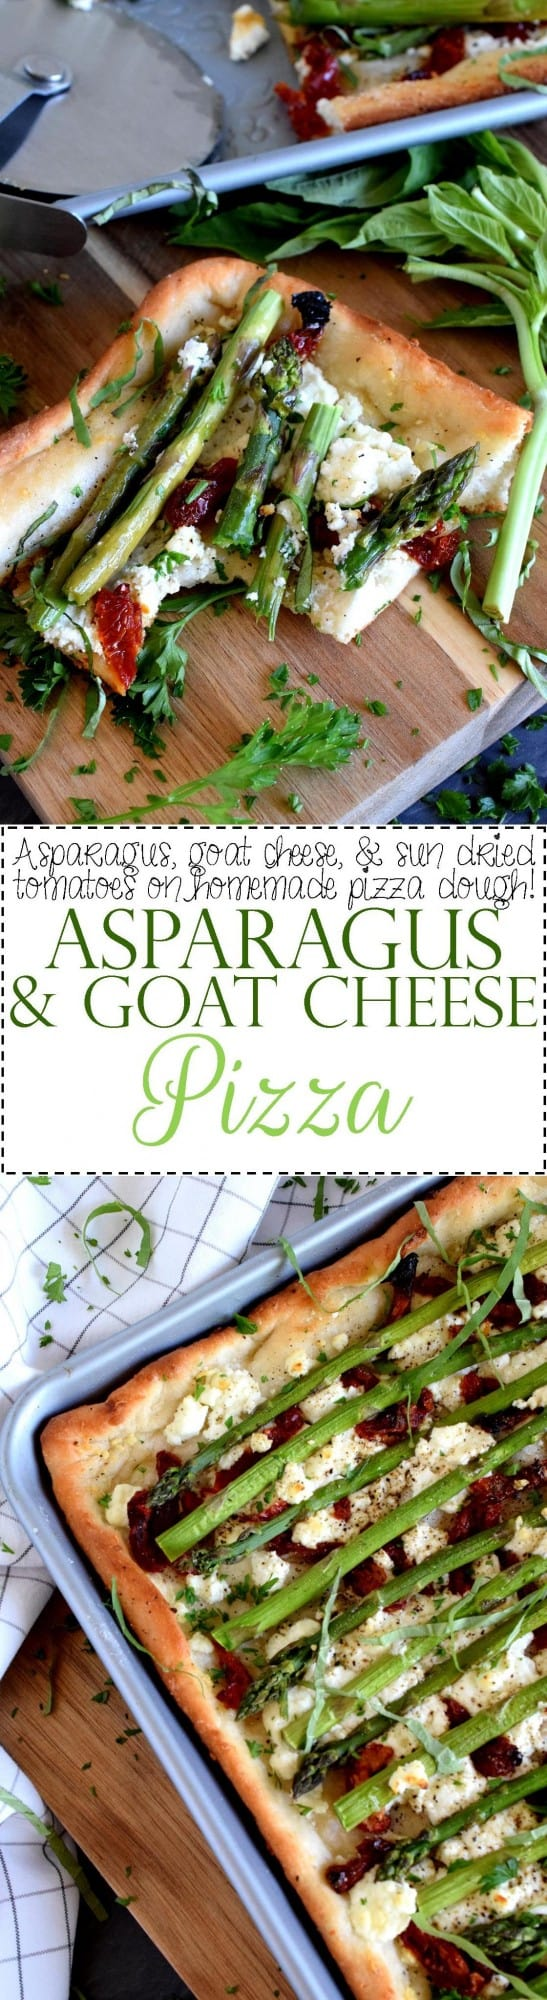 Asparagus and Goat Cheese Pizza - Lord Byron's Kitchen